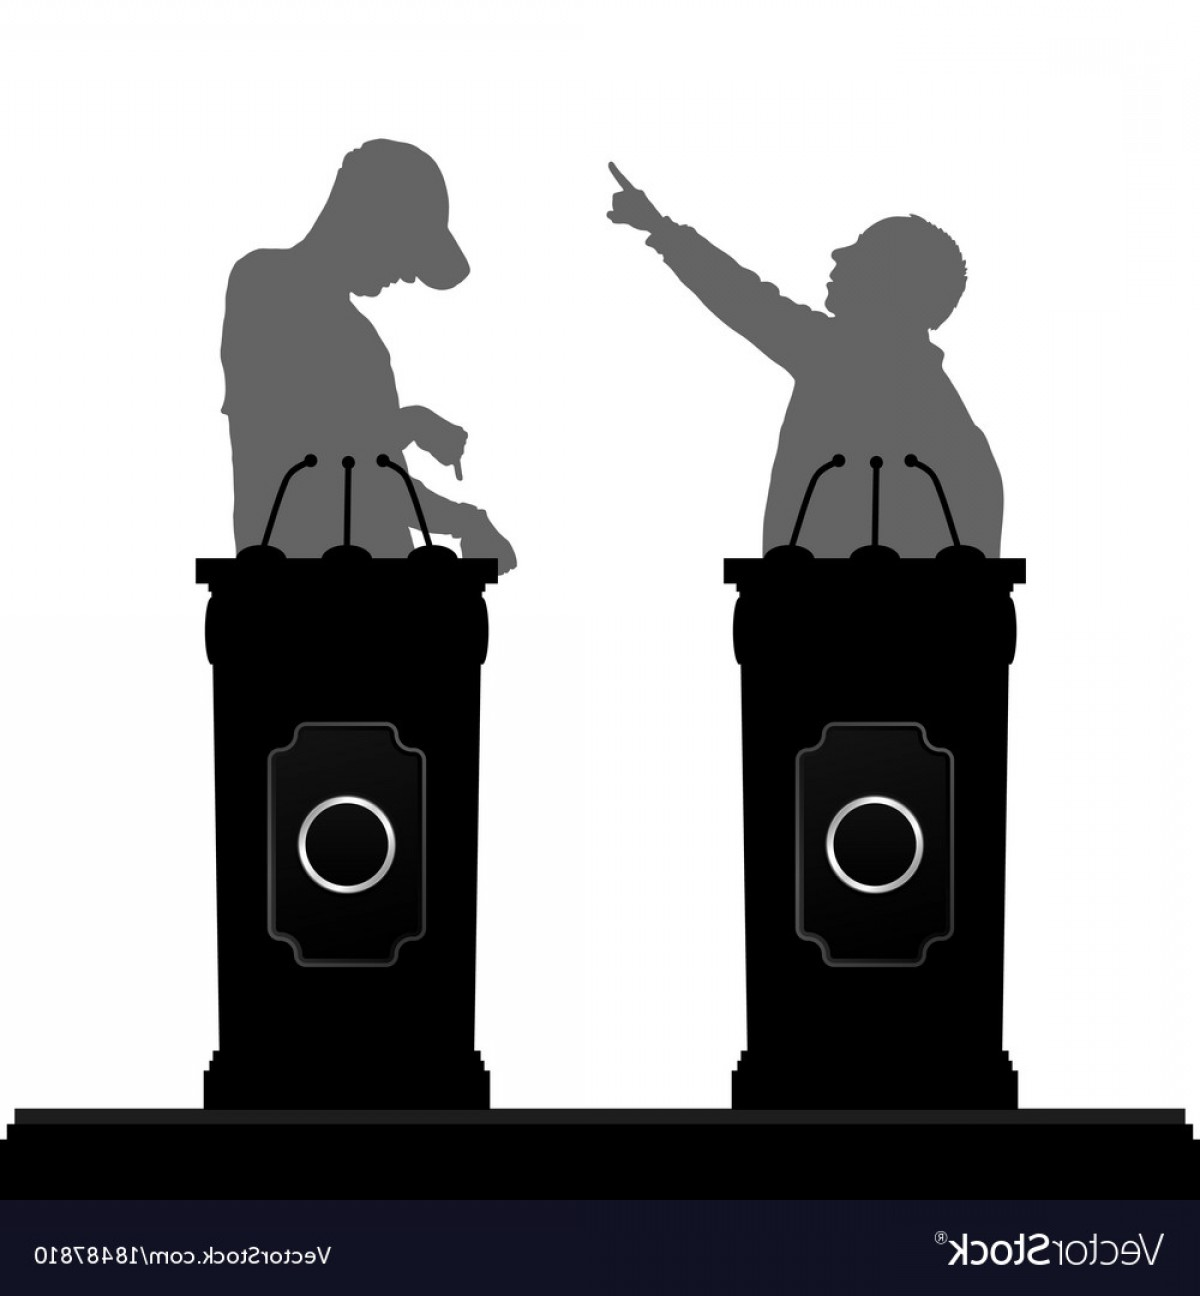 Male Silhouette Vector Art: Two Man Silhouette Debate On Platform Vector